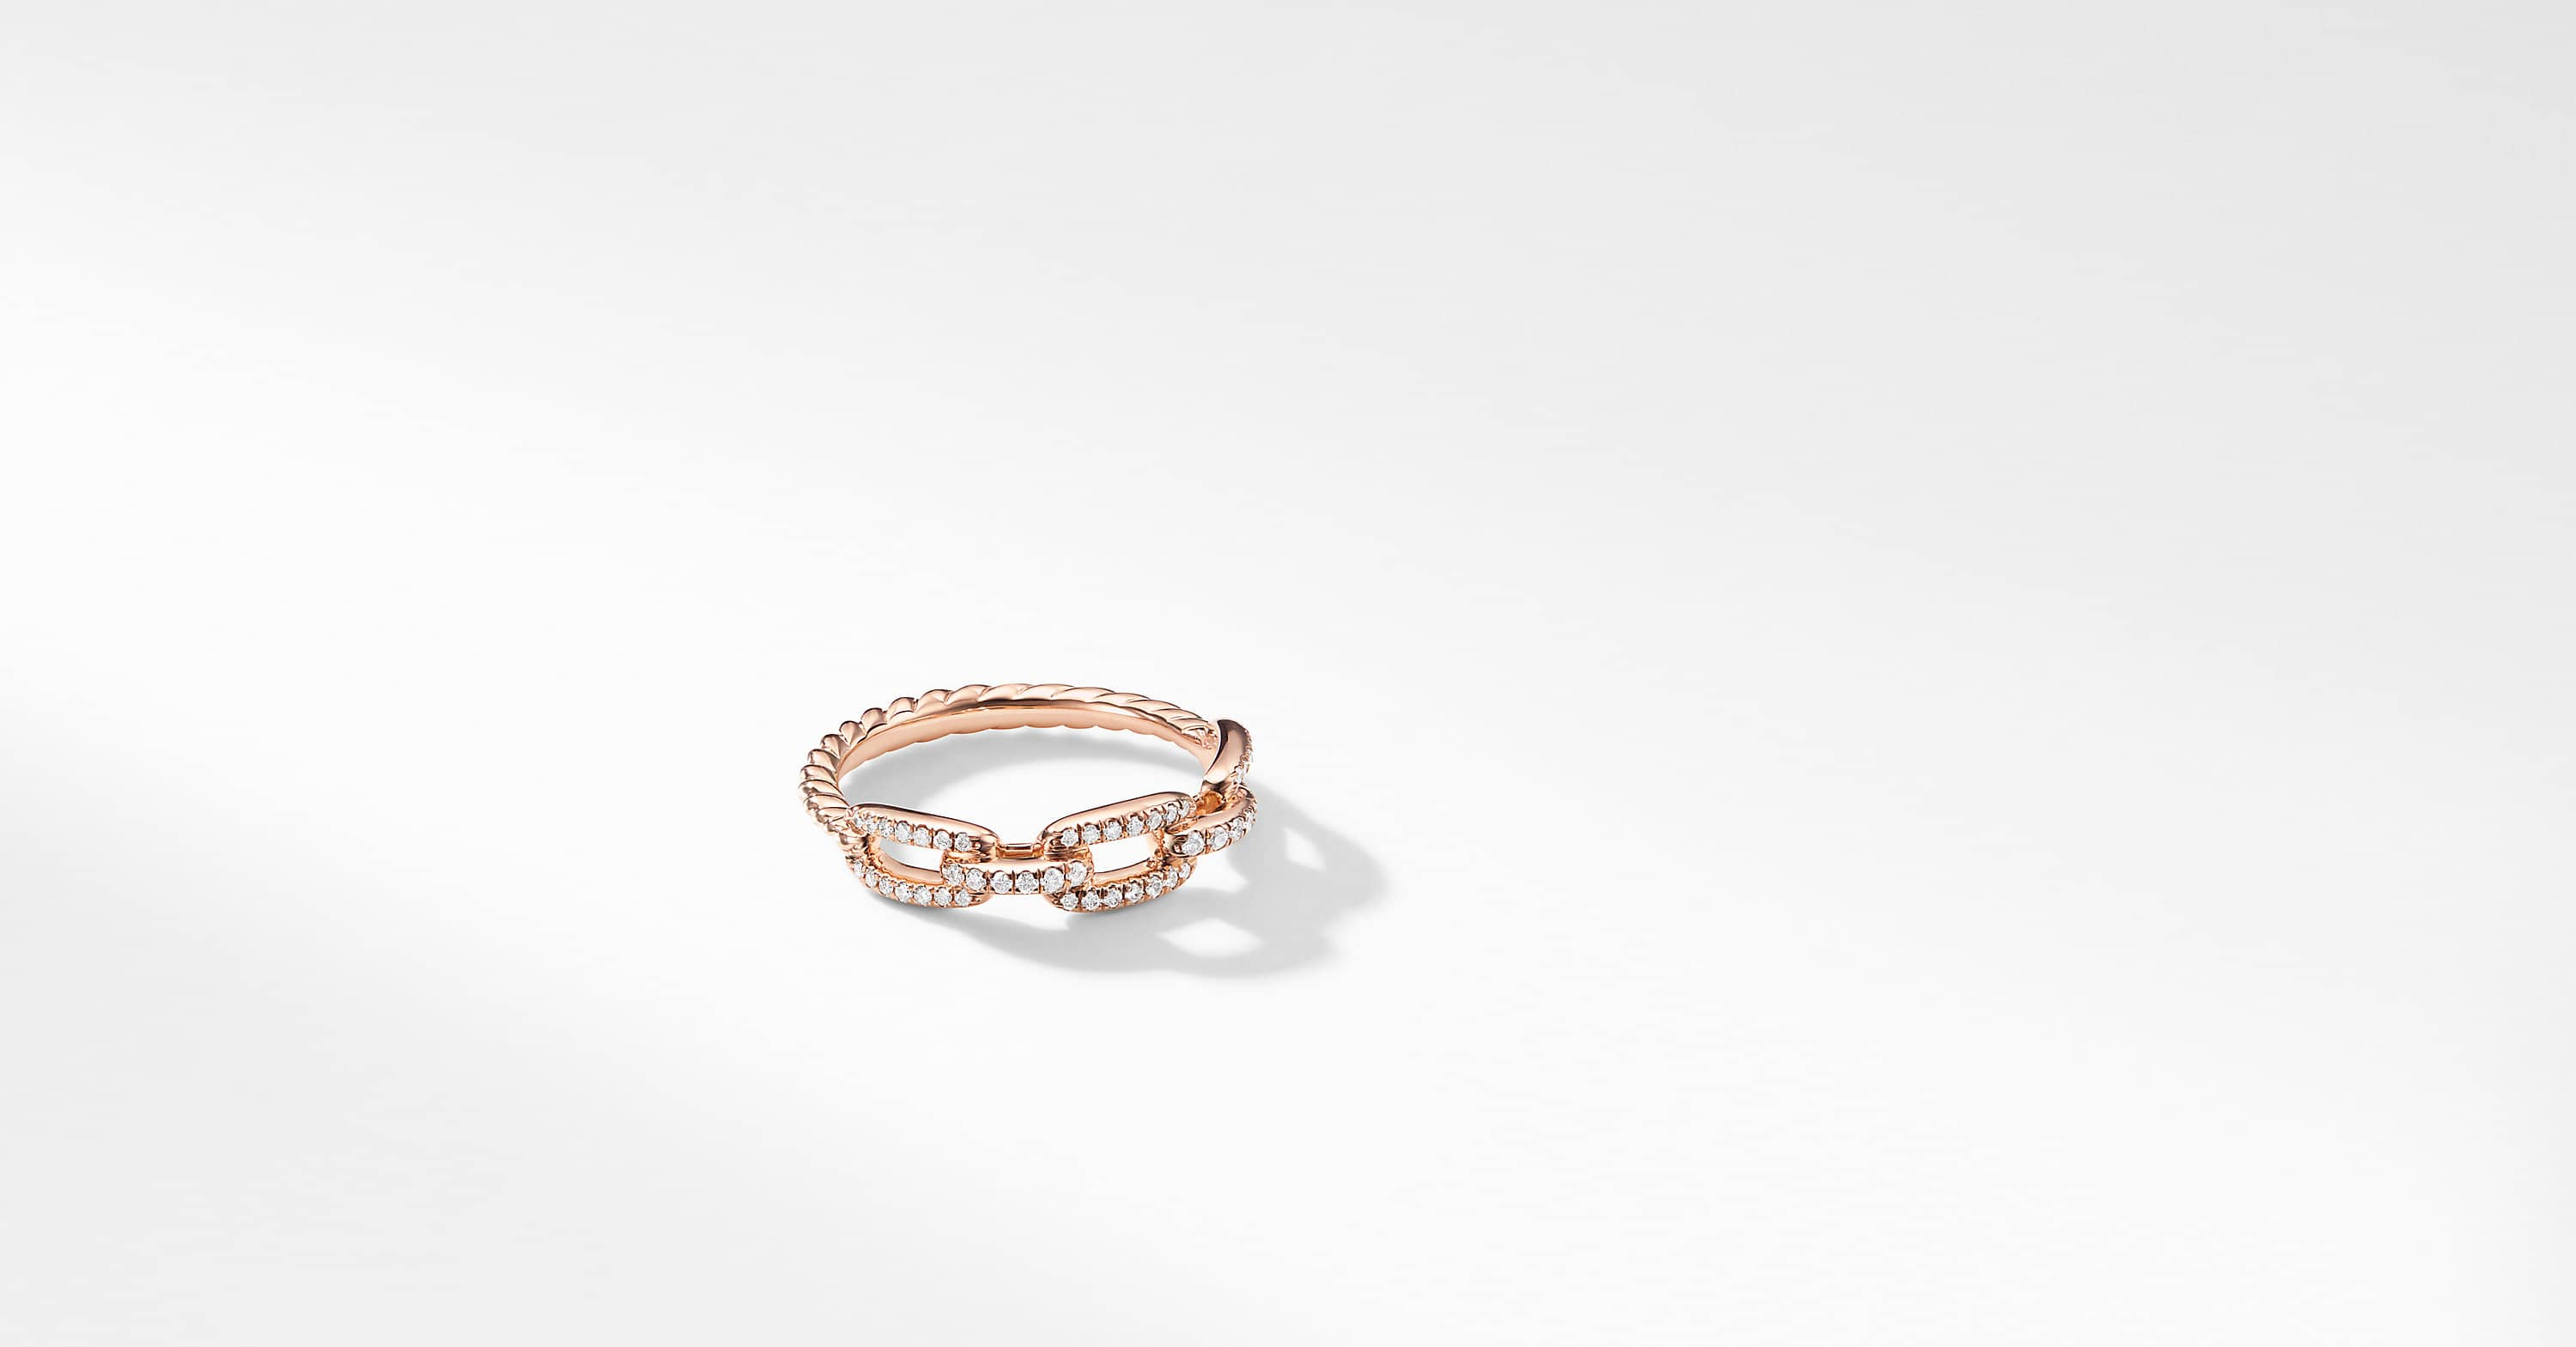 Stax Single Row Pave Chain Link Ring with Diamonds in 18K Rose Gold, 4.5mm